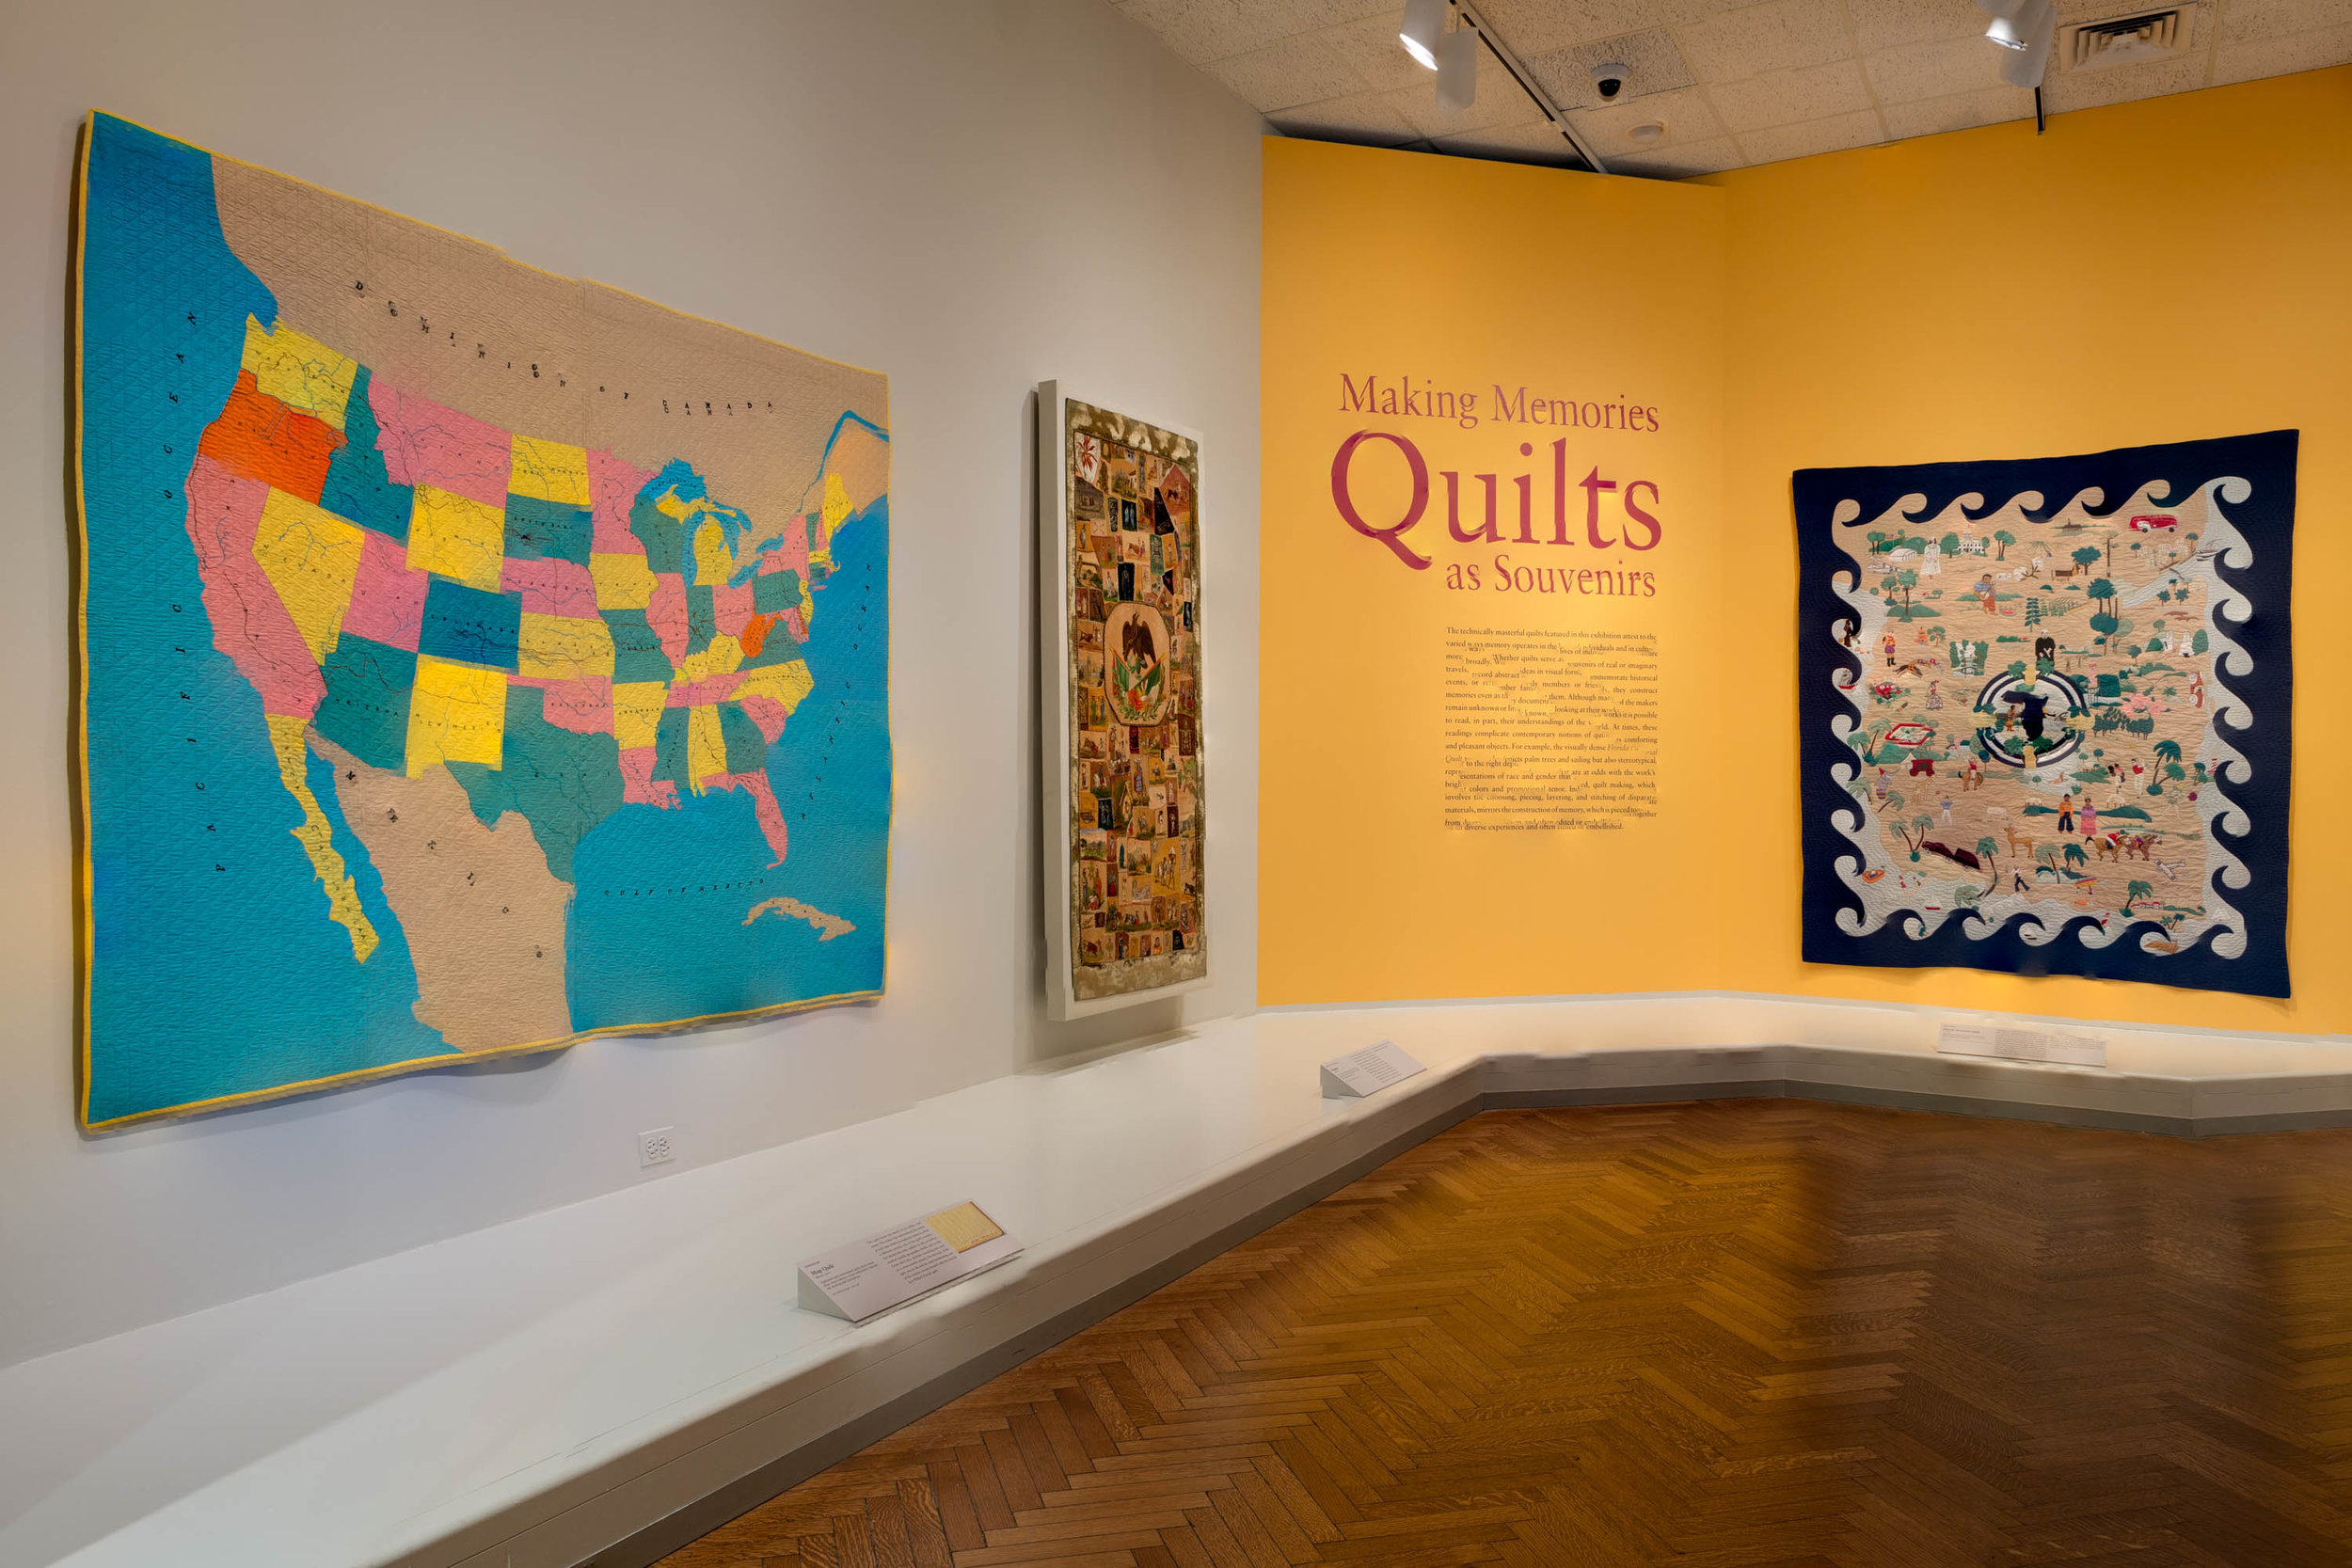 Elizabeth F. Cheney and Agnes Allerton Textile Galleries, The Art Institute of Chicago, 2017-2018.